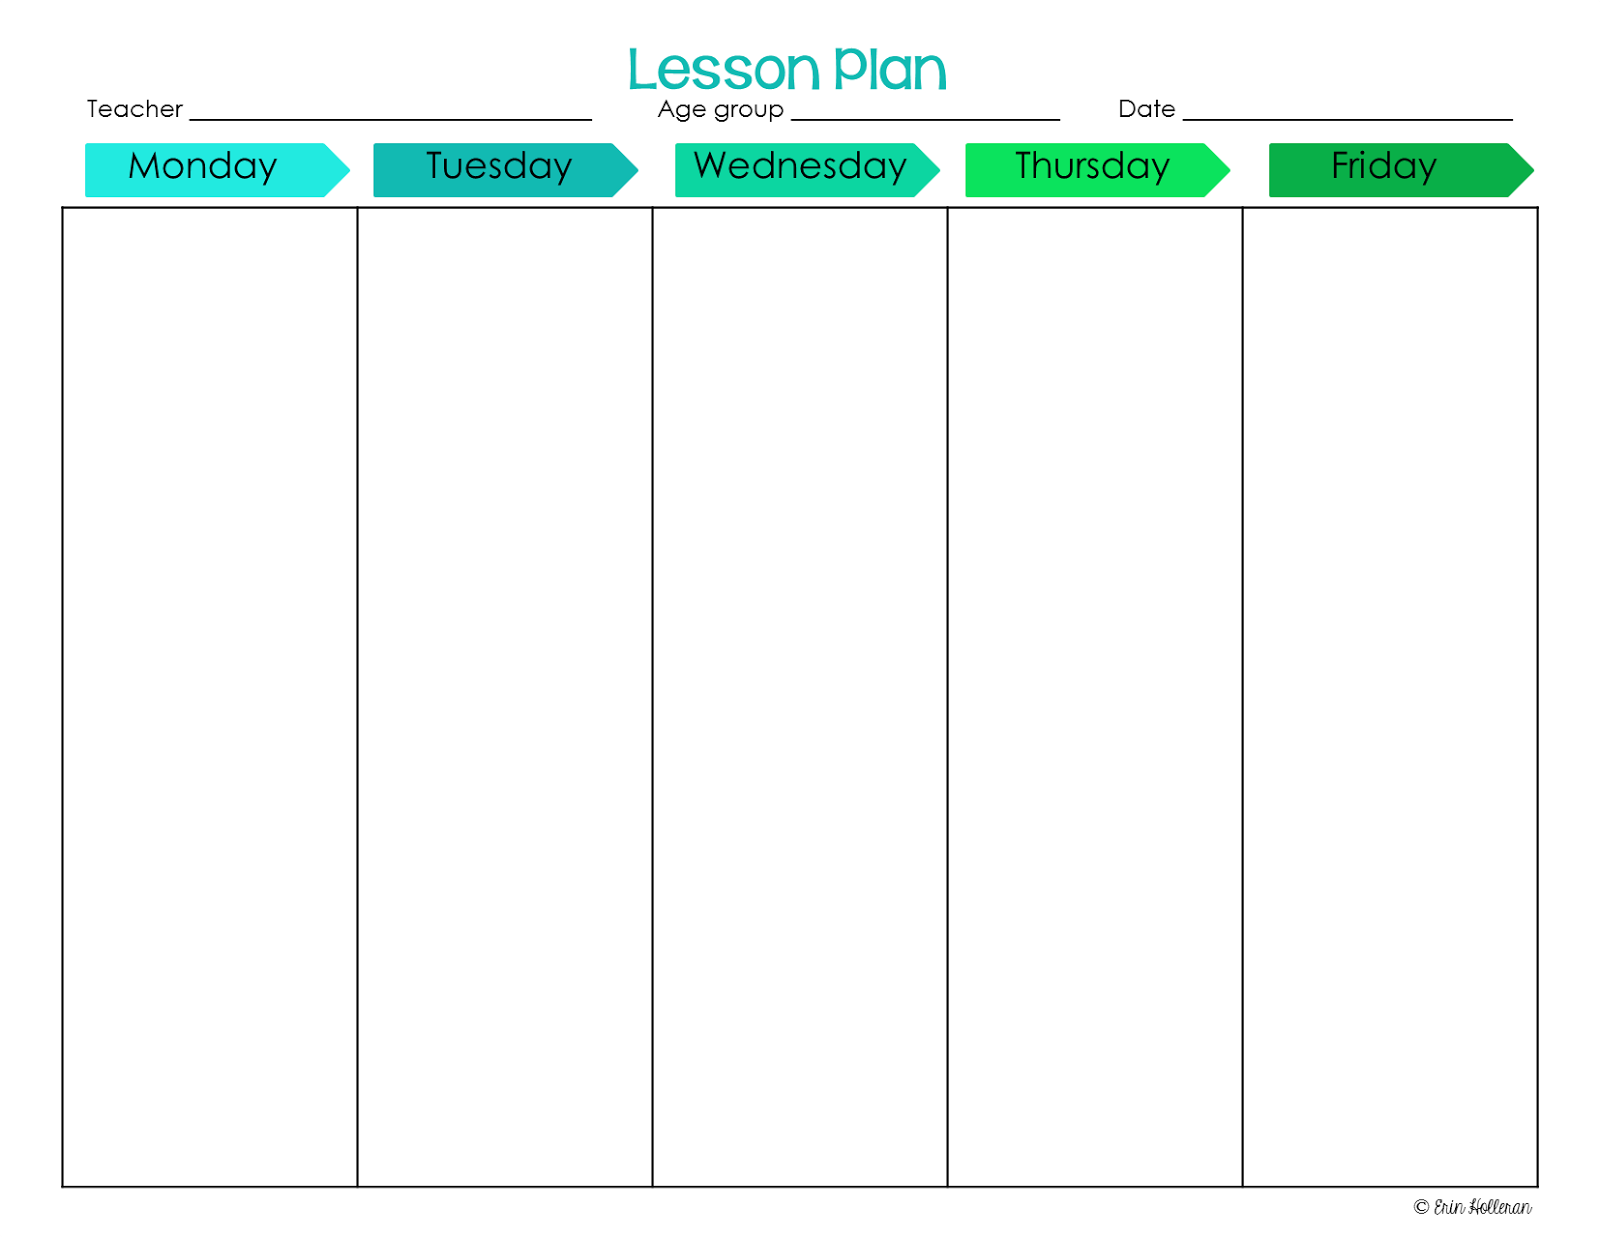 lesson plan 1 Lesson plan 1 lesson plan 1 this lesson is one of two in a series bringing relevant stories of the penitentiary into the classroom grade levels 6 - 12 subject areas the lesson could be used in american history, criminal justice, general mathematic courses, psychology, sociology, and statistical methods courses.